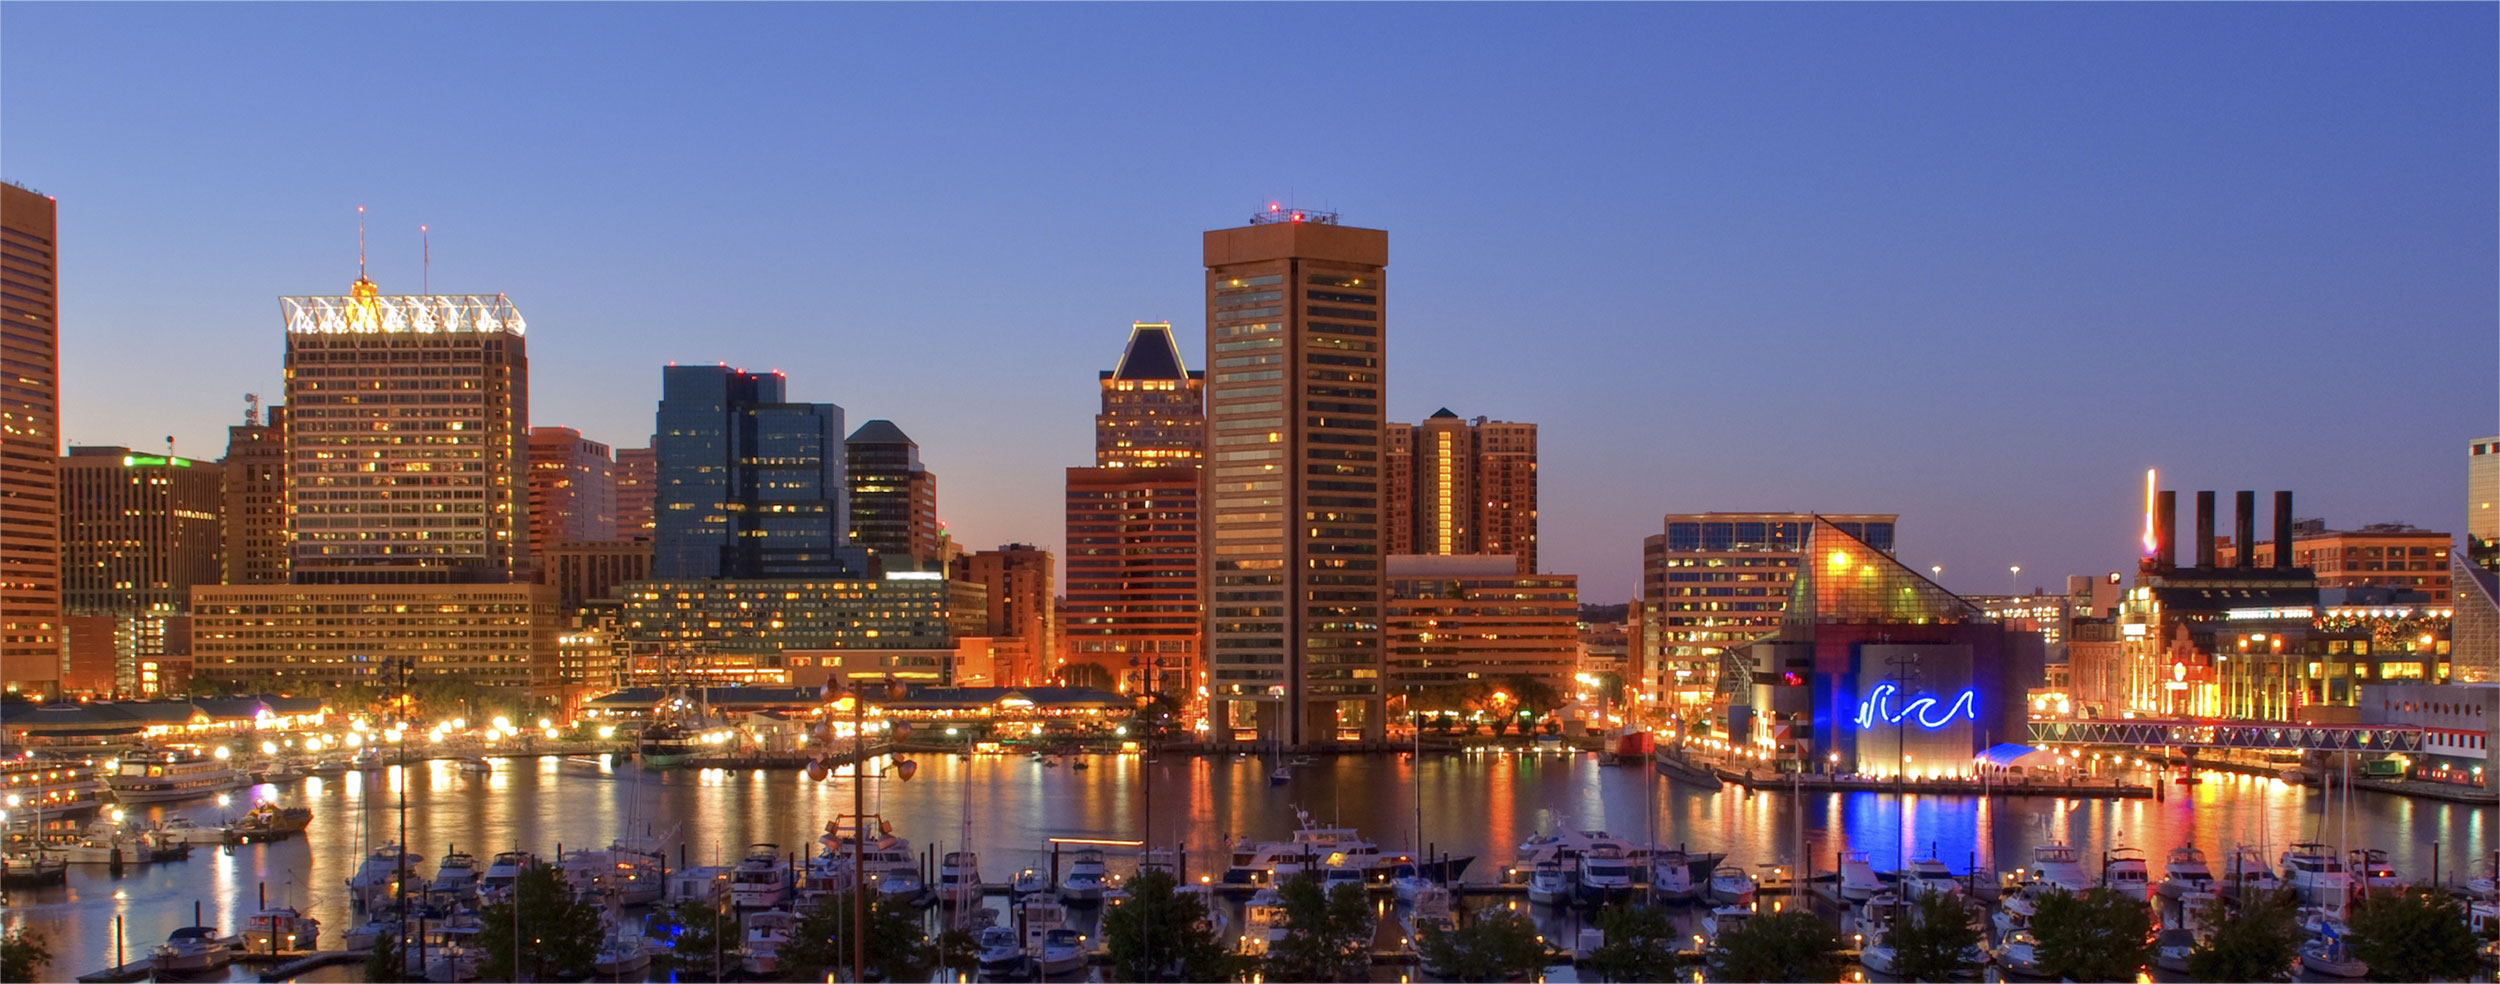 evening photo of downtown Baltimore skyline with marina in foreground and buildings in the background